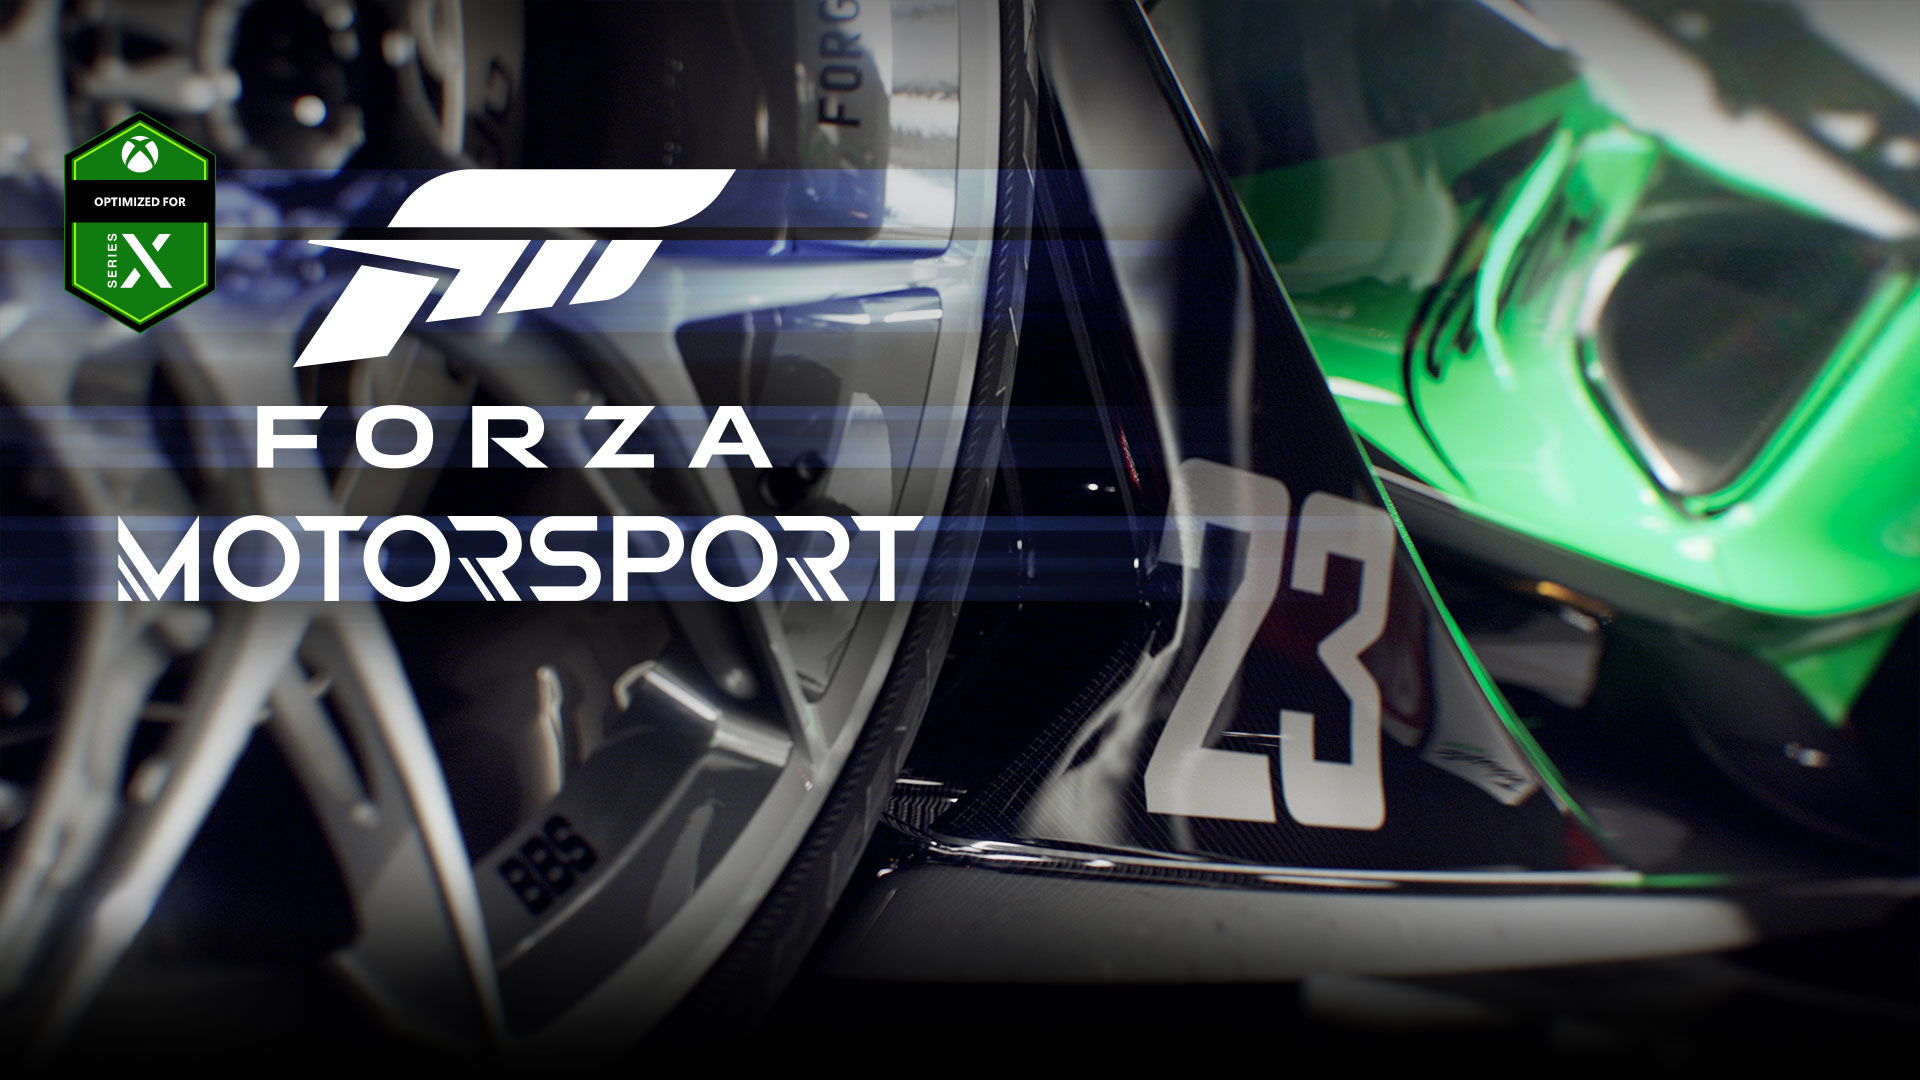 Forza Motorsport Featured Image